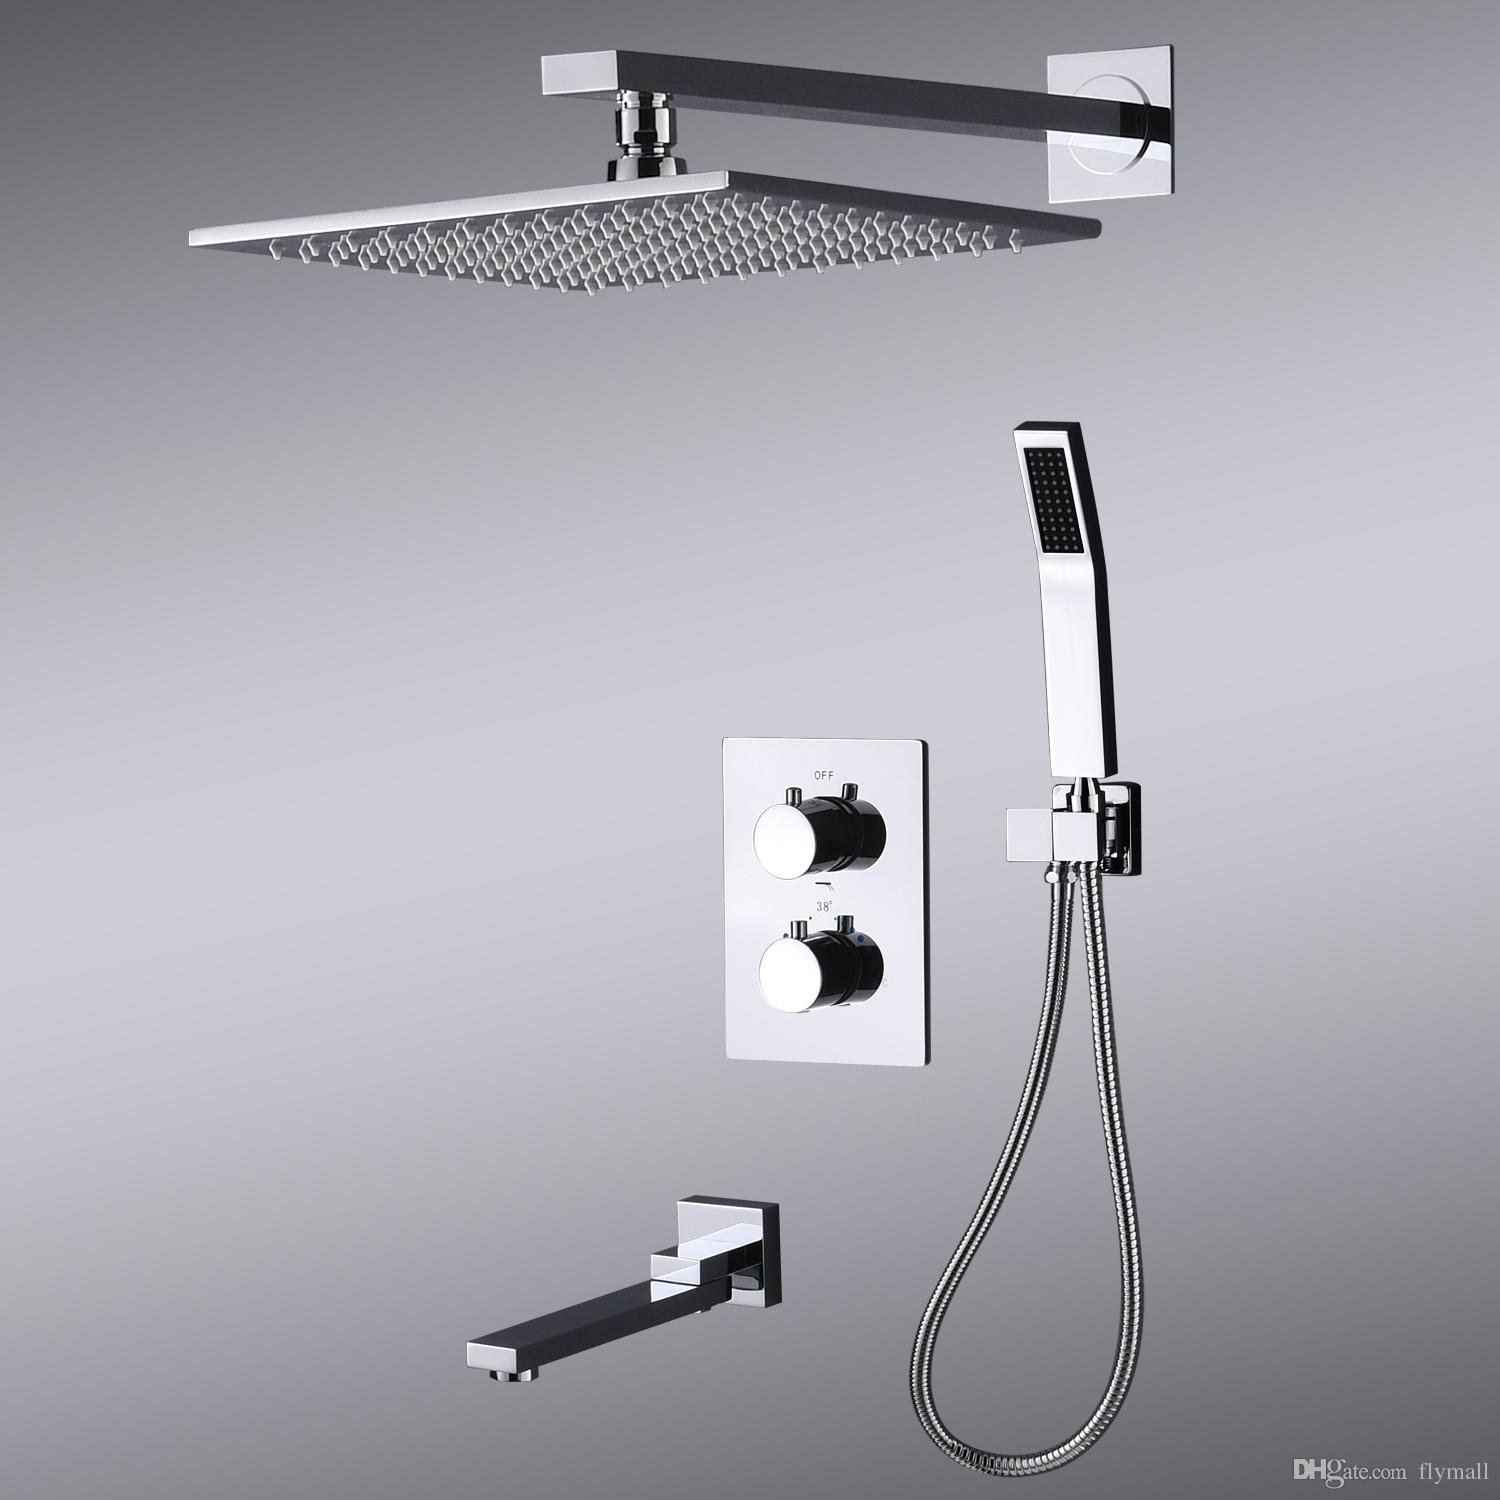 Shower Faucets Bathtub Rainfall Shower Head Wall Mount Panel Mixer Wall Mounted Message Shower Set With Hand Shower Bathroom Shower Set